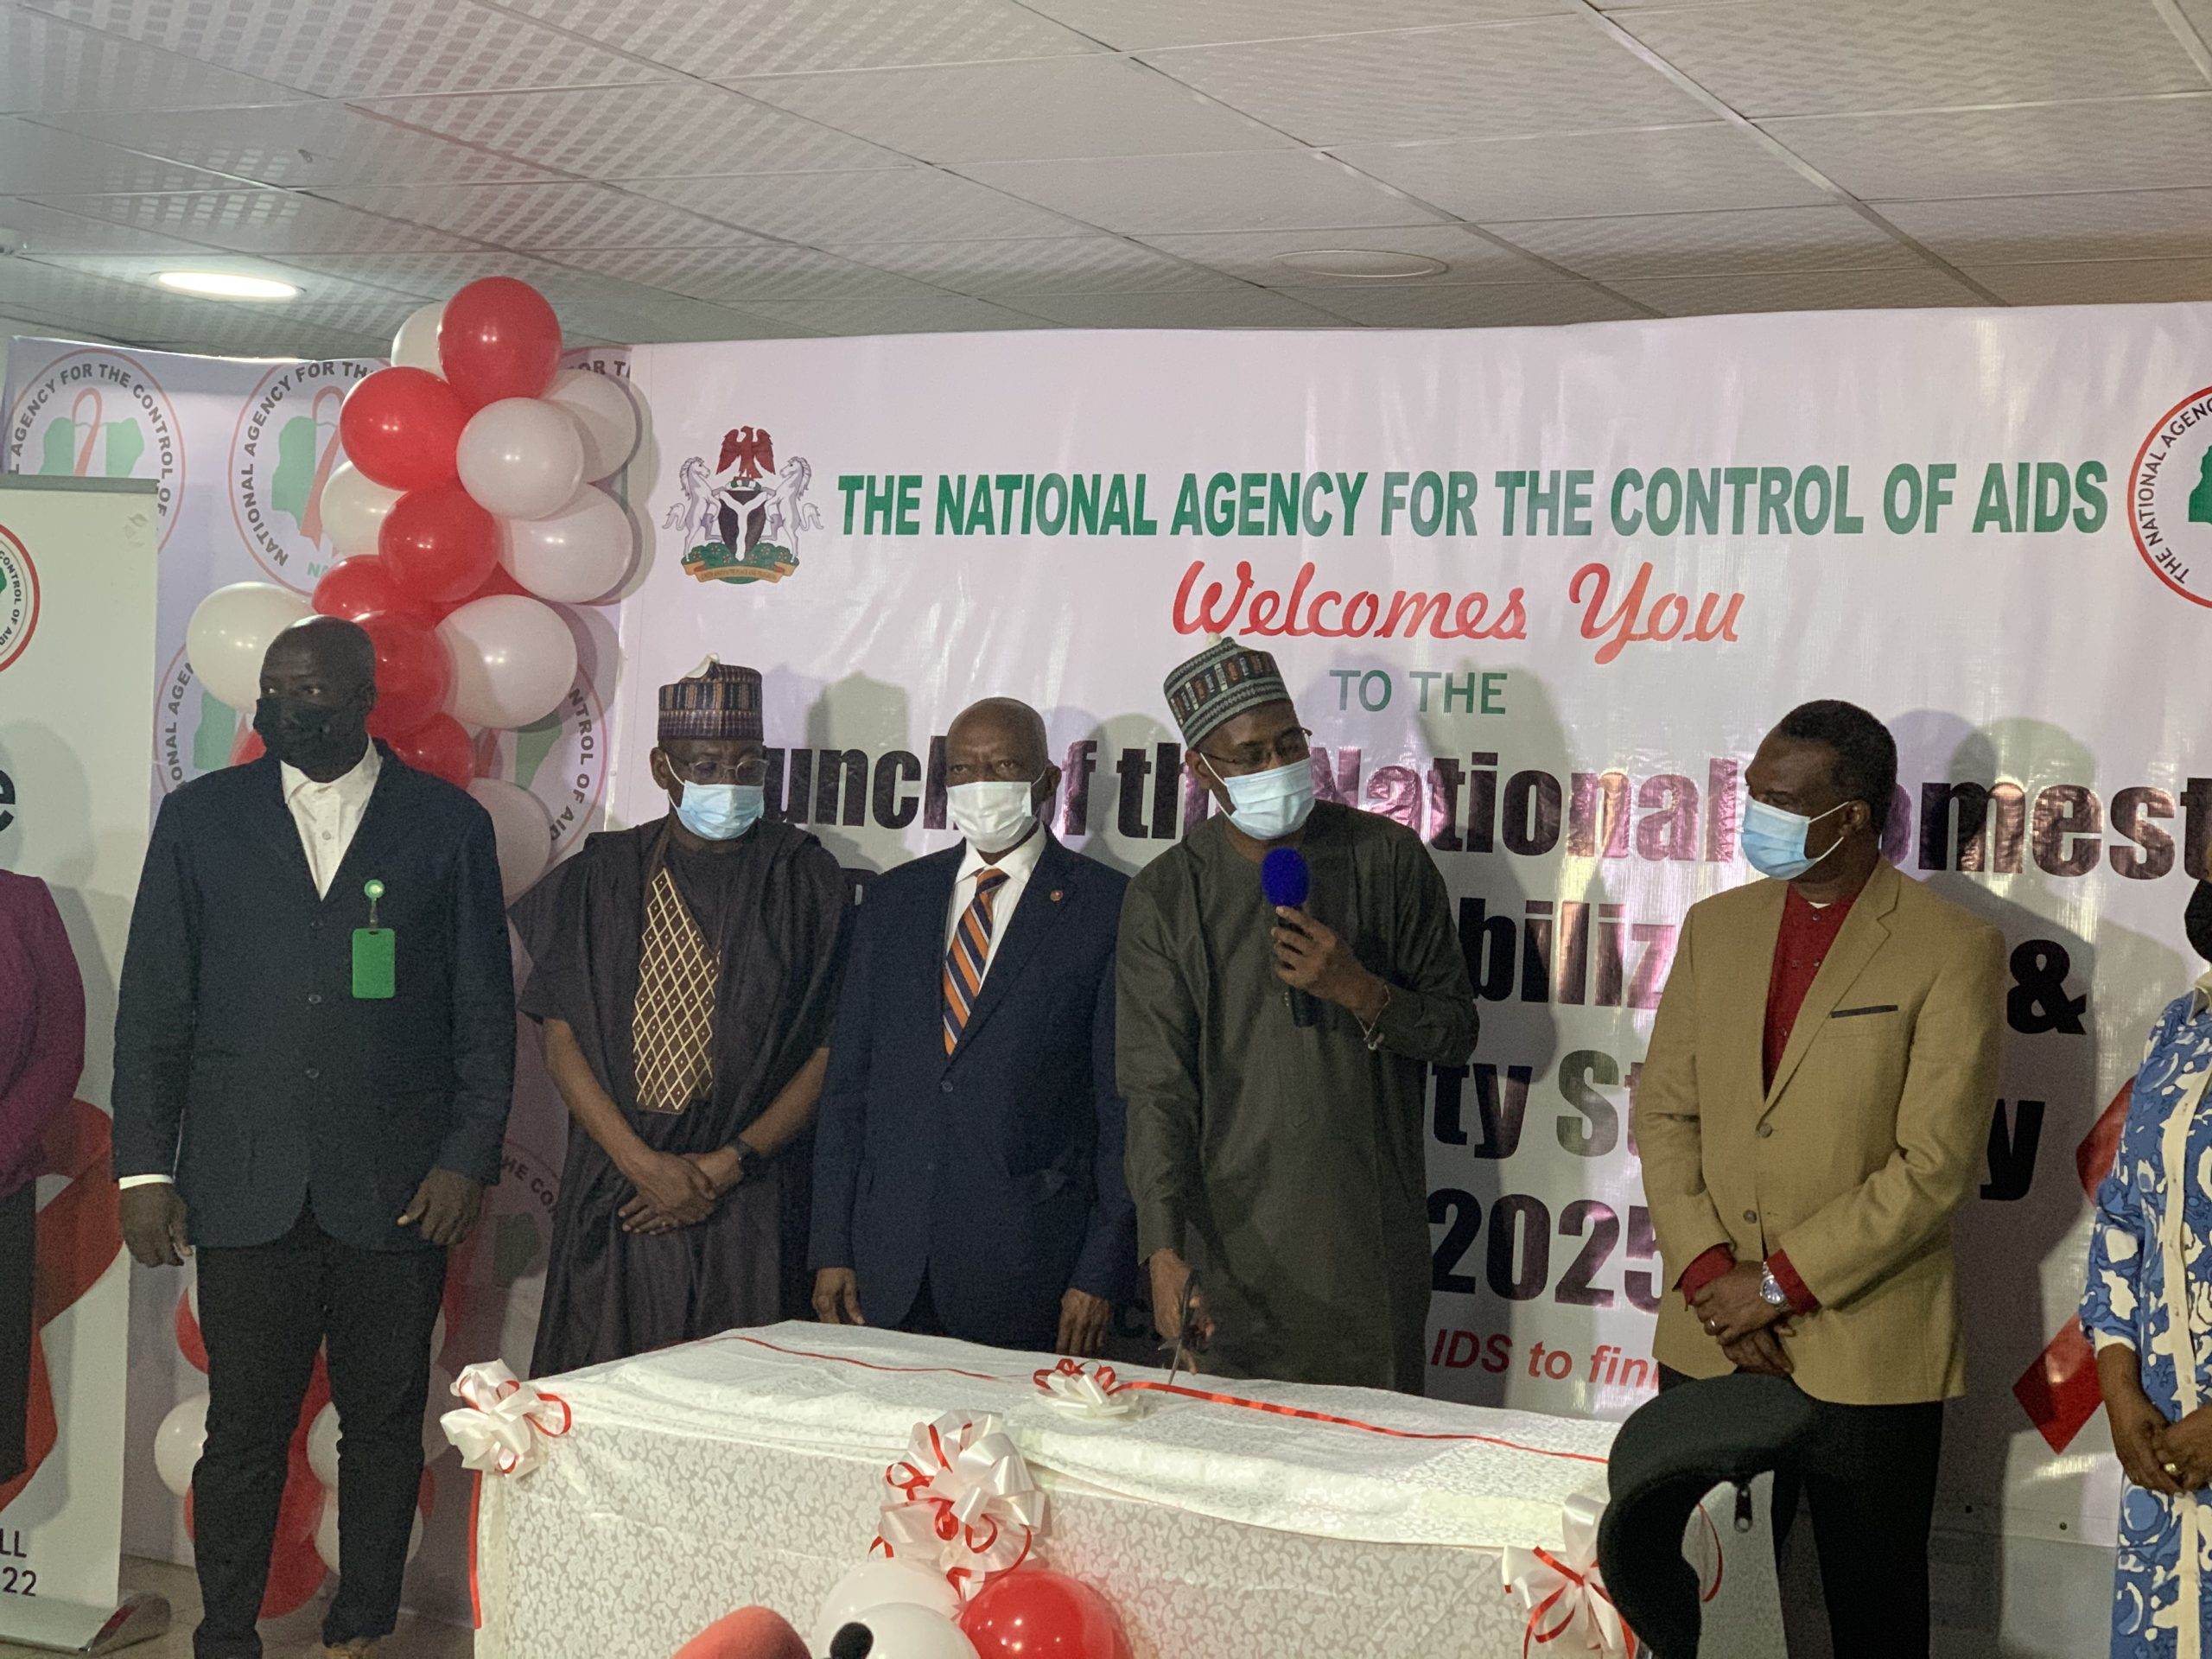 The Director General of the National Agency for the Control of AIDS (NACA), Gambo Aliyu, Country Director of UNAIDS, Erasmus Morah, the chairman house committee on AIDS, Tuberculosis and Malaria, Abubakar Dahiru and other stakeholders at the launch of the National Domestic Resource Mobilisation and Sustainability Strategy on Wednesday.